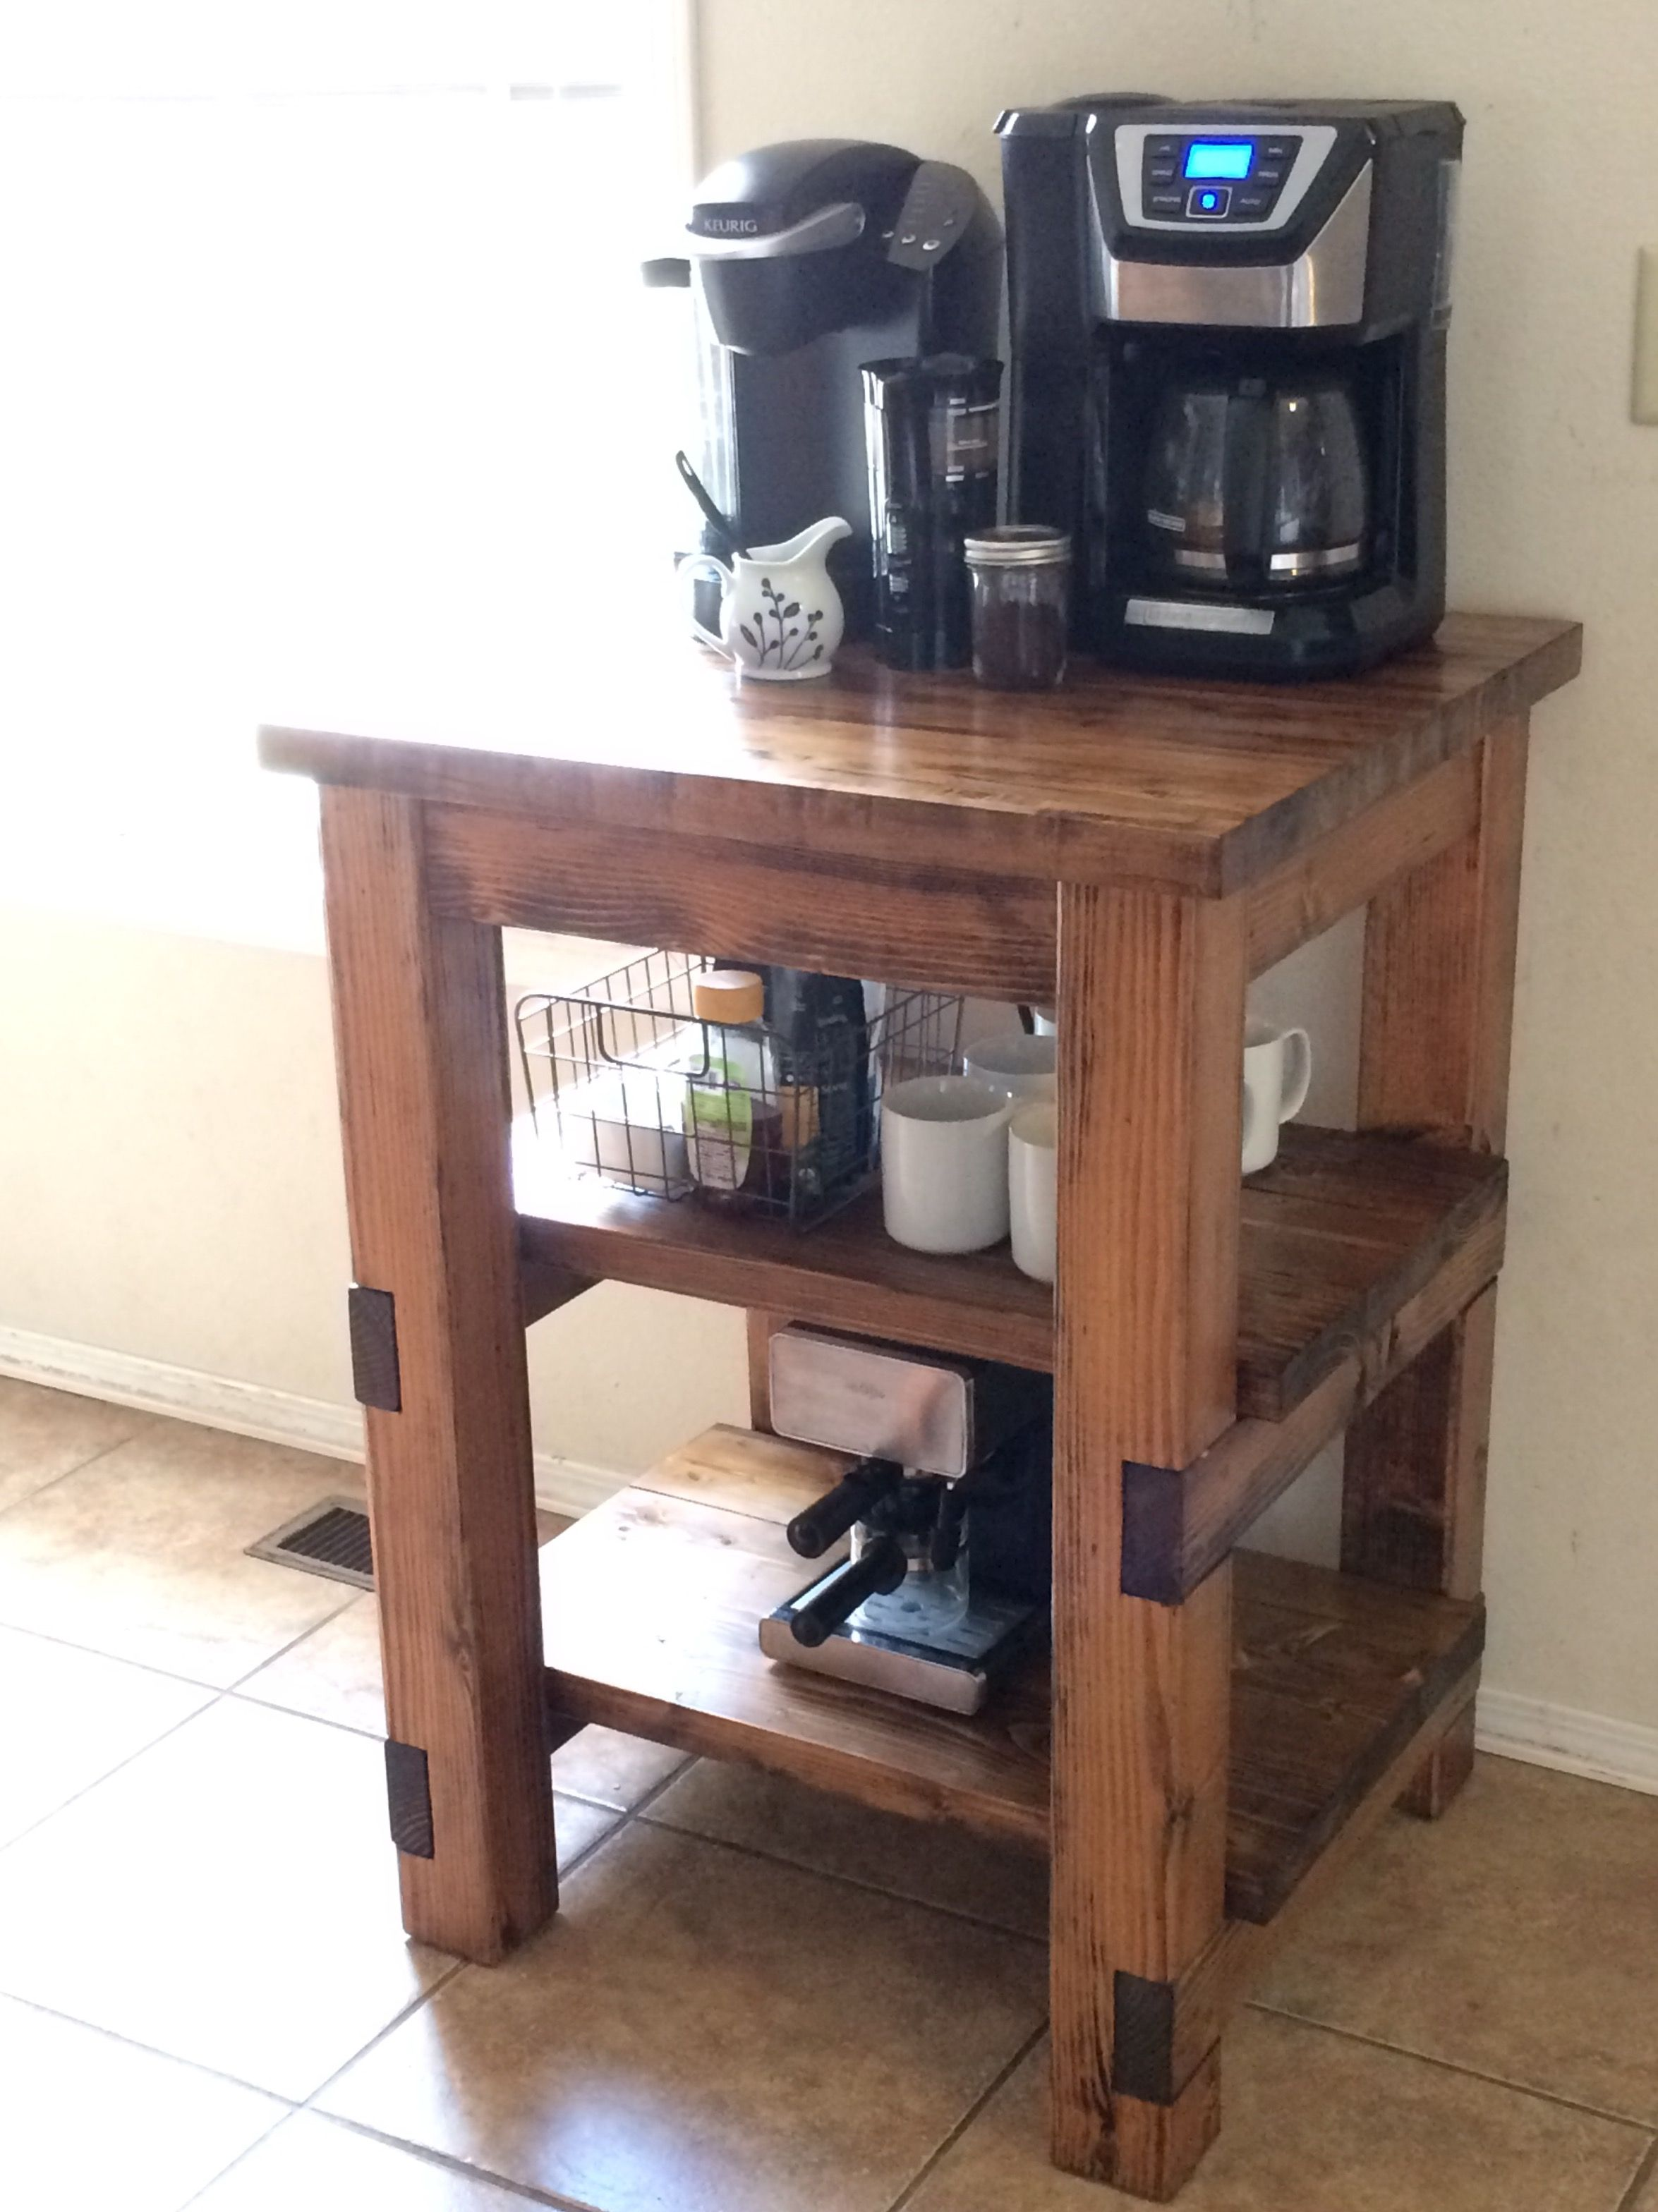 Ana White | Coffee Bar - DIY Projects | Dining Room Tutorials ...